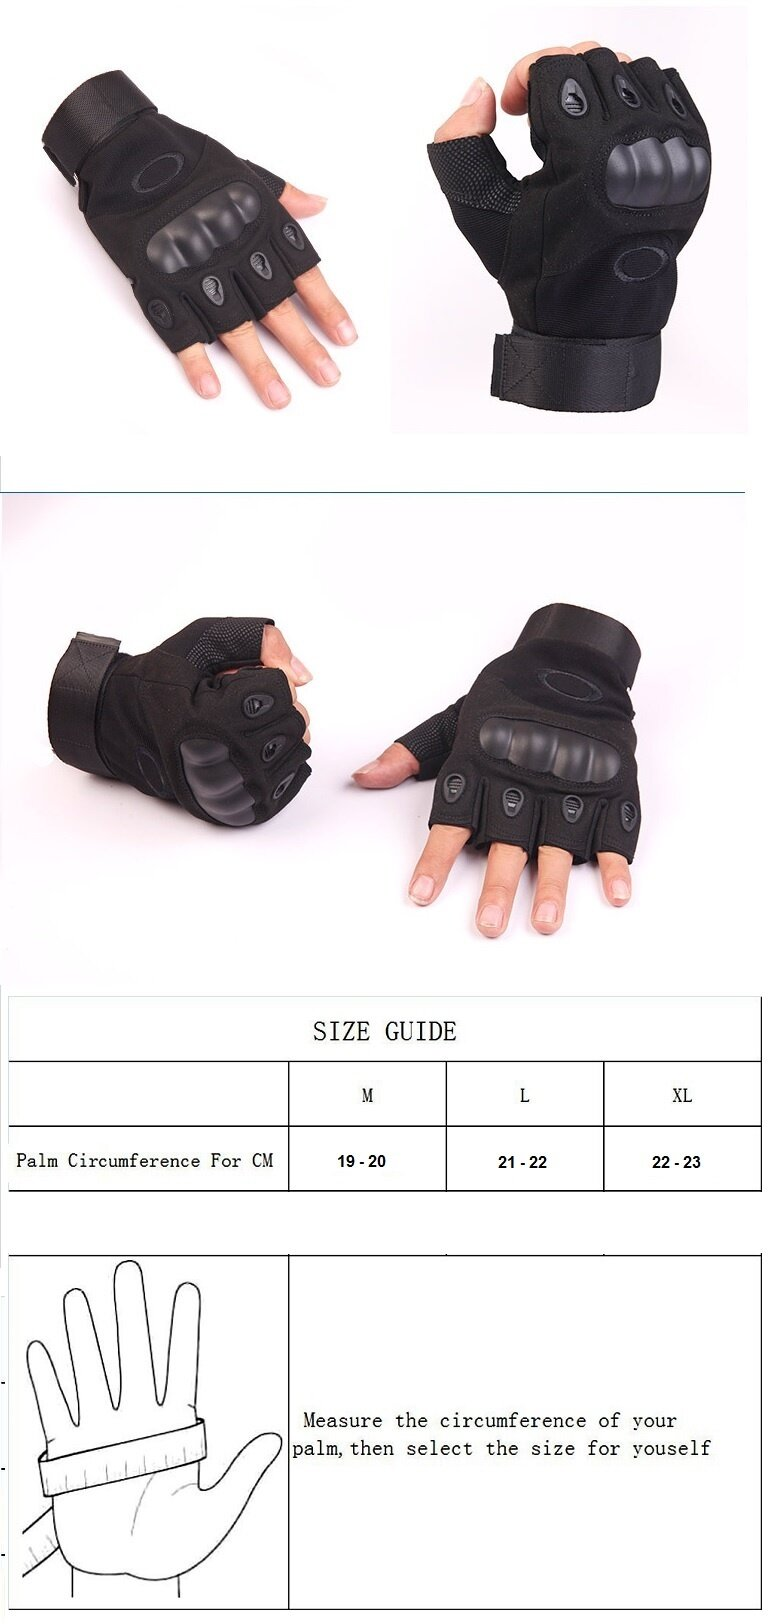 EcoSport Tactical Gloves, Half Finger Military Gloves for Fitness Gym  Workout,bMotor Driving, Outdoor, Camping, Hunting [Florasun]